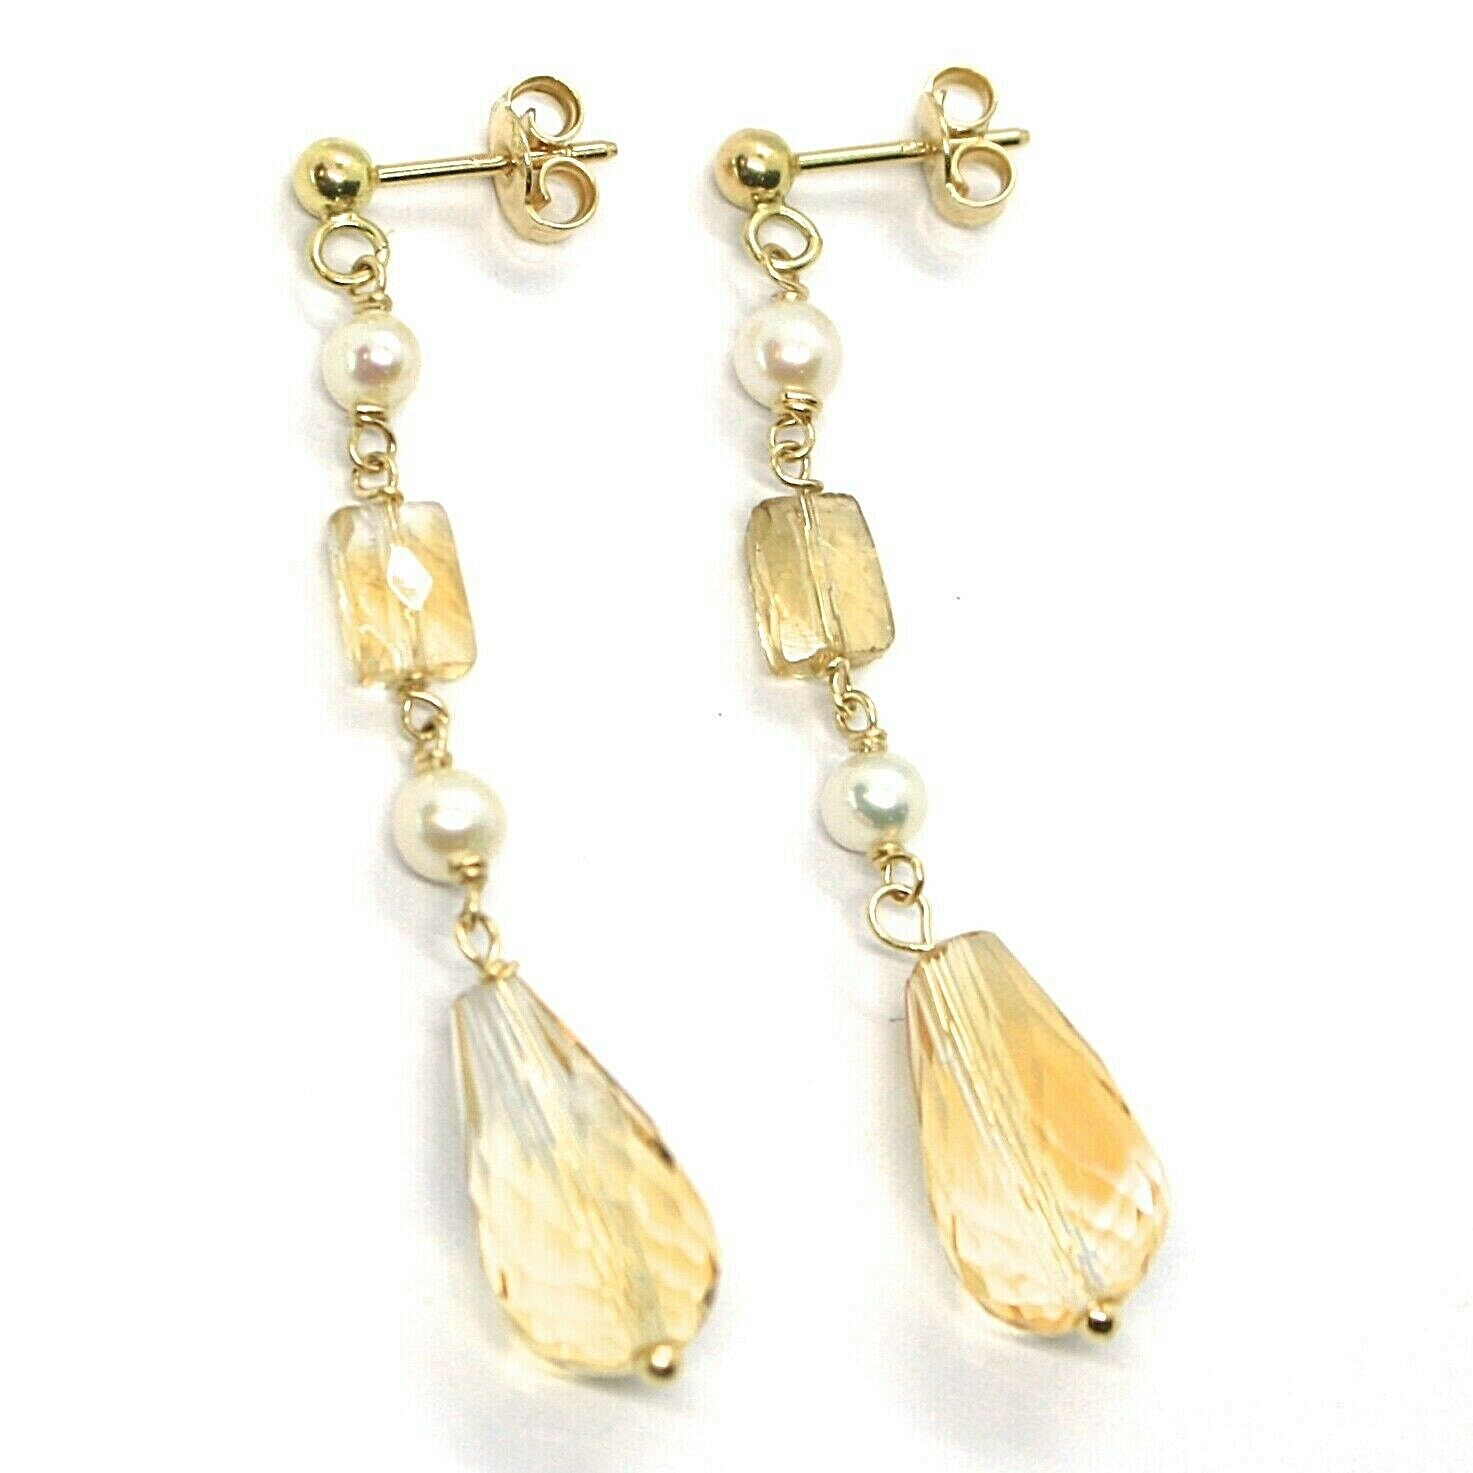 18K YELLOW GOLD PENDANT EARRINGS, PEARL AND CITRINE DROP, 1.93 INCHES